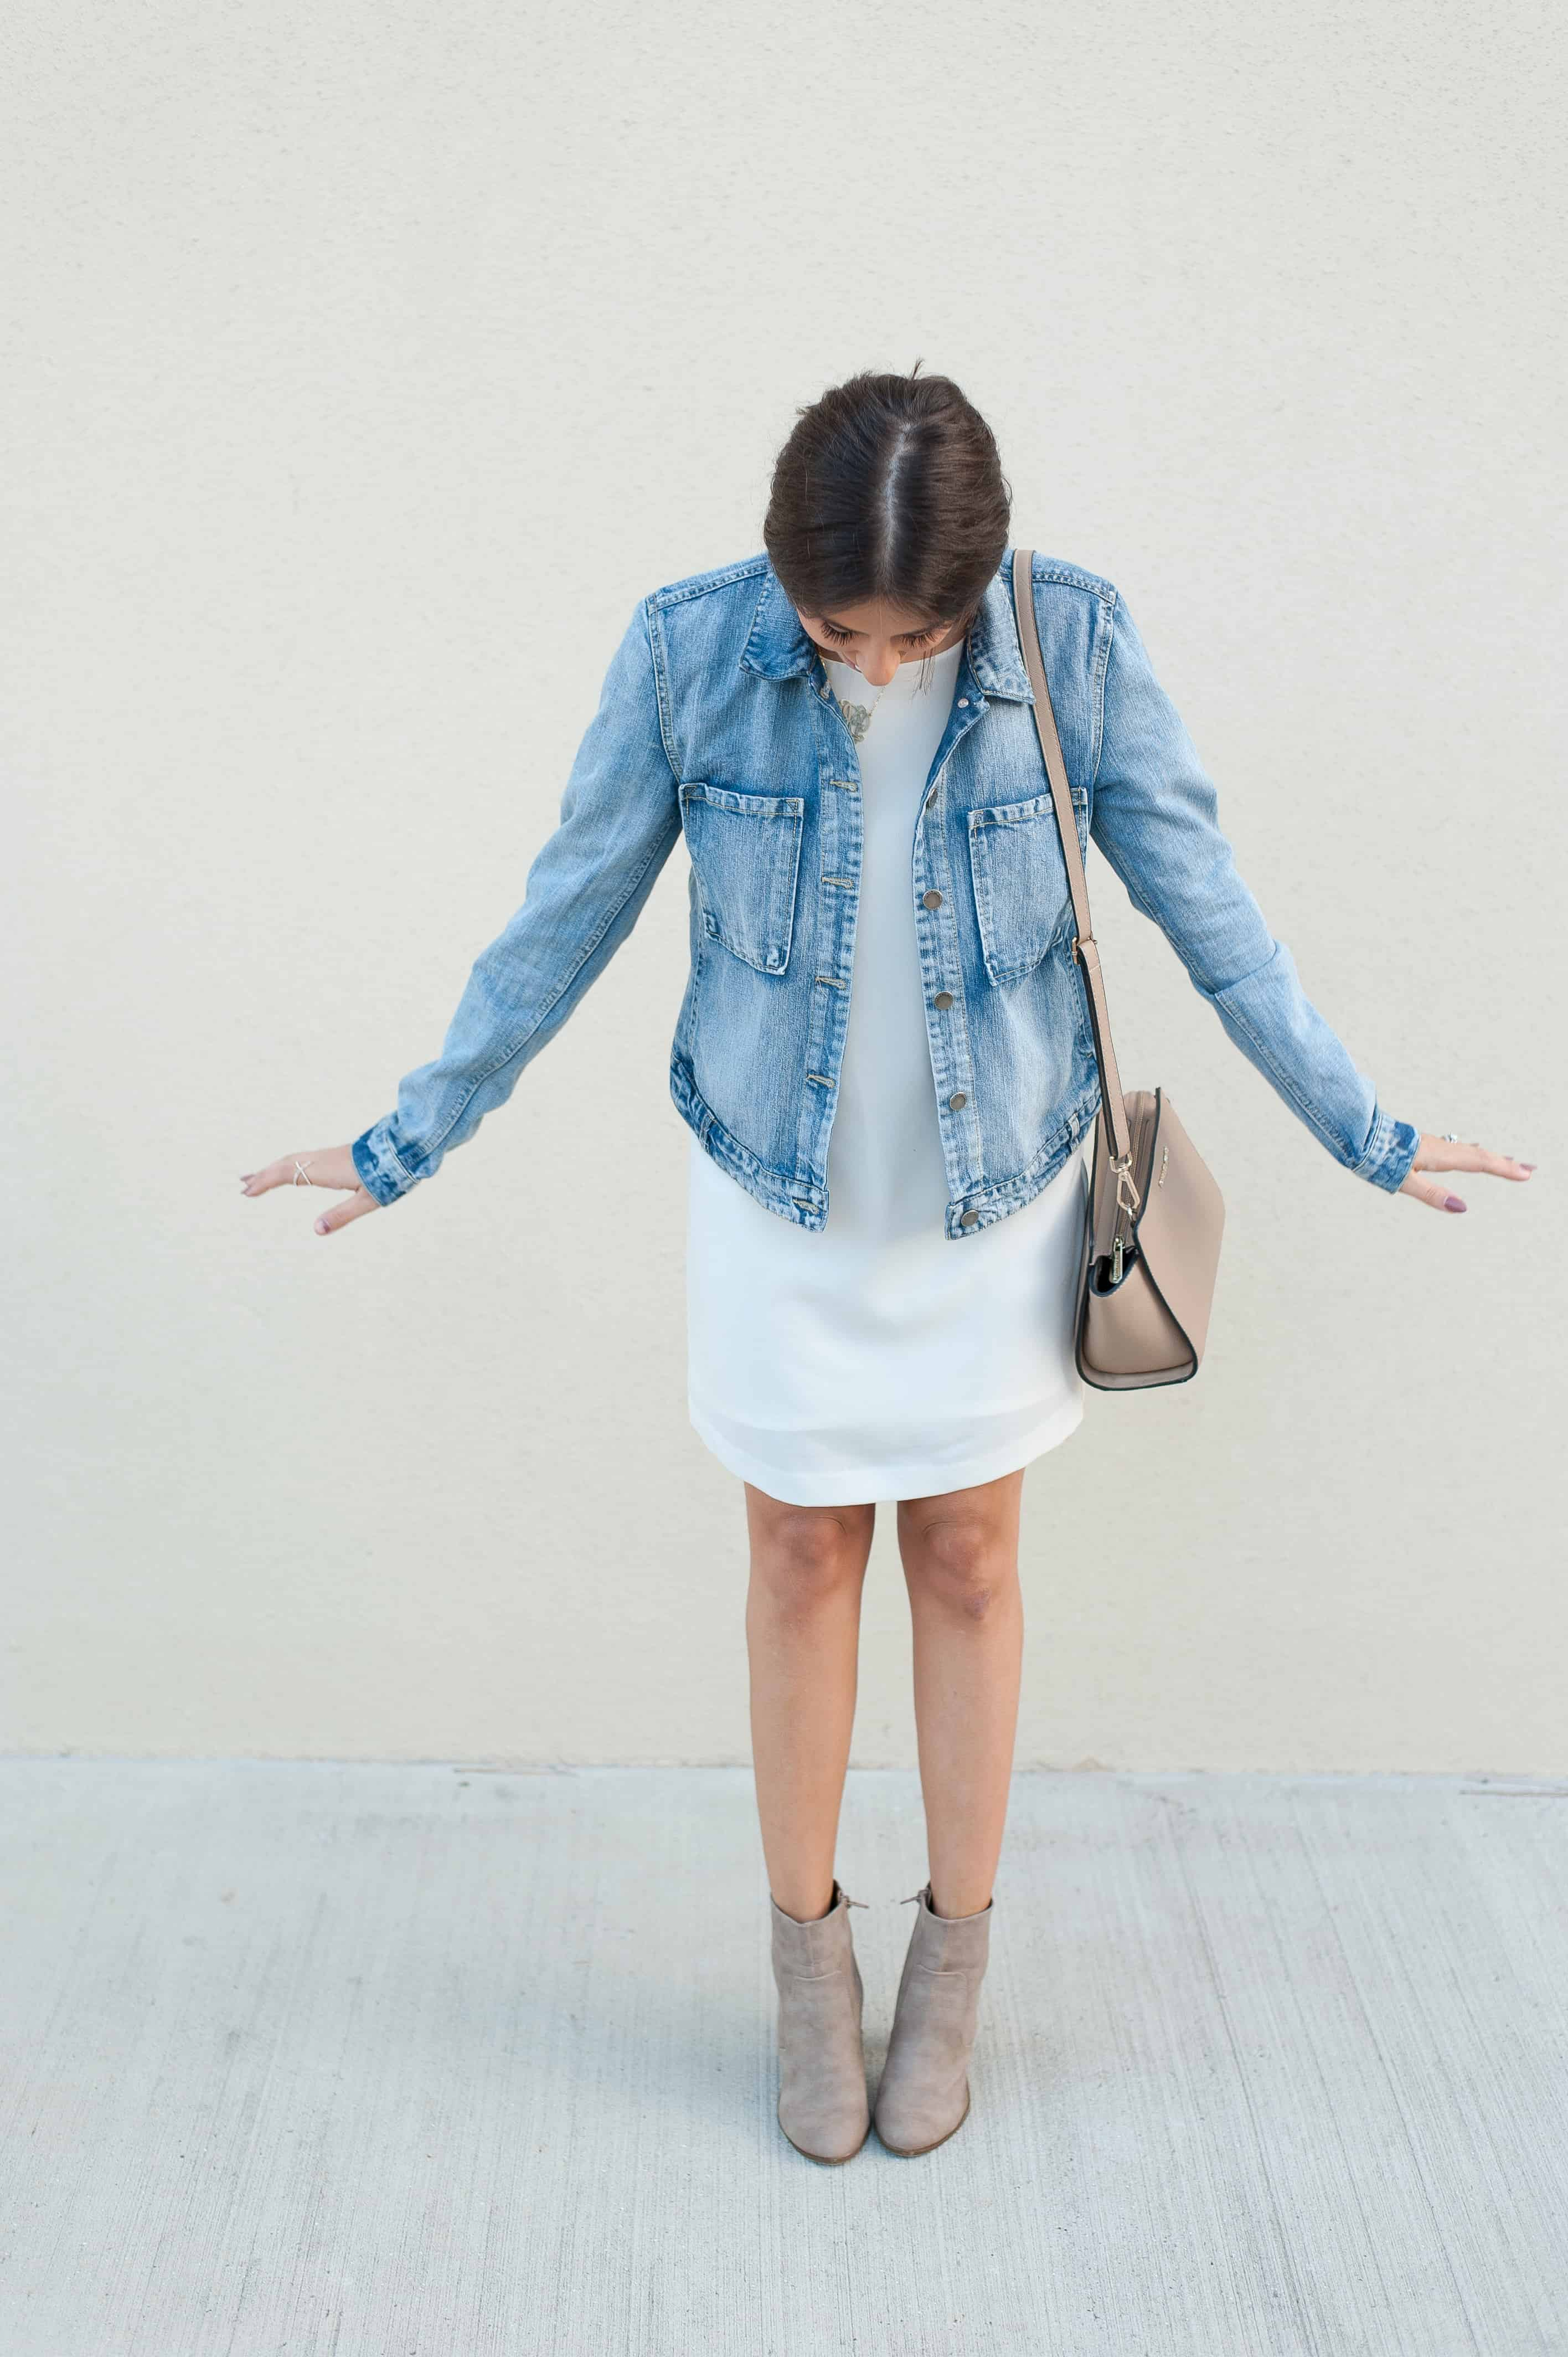 dress_up_buttercup_dede_raad_houston_fashion_style_blog (7 of 9)